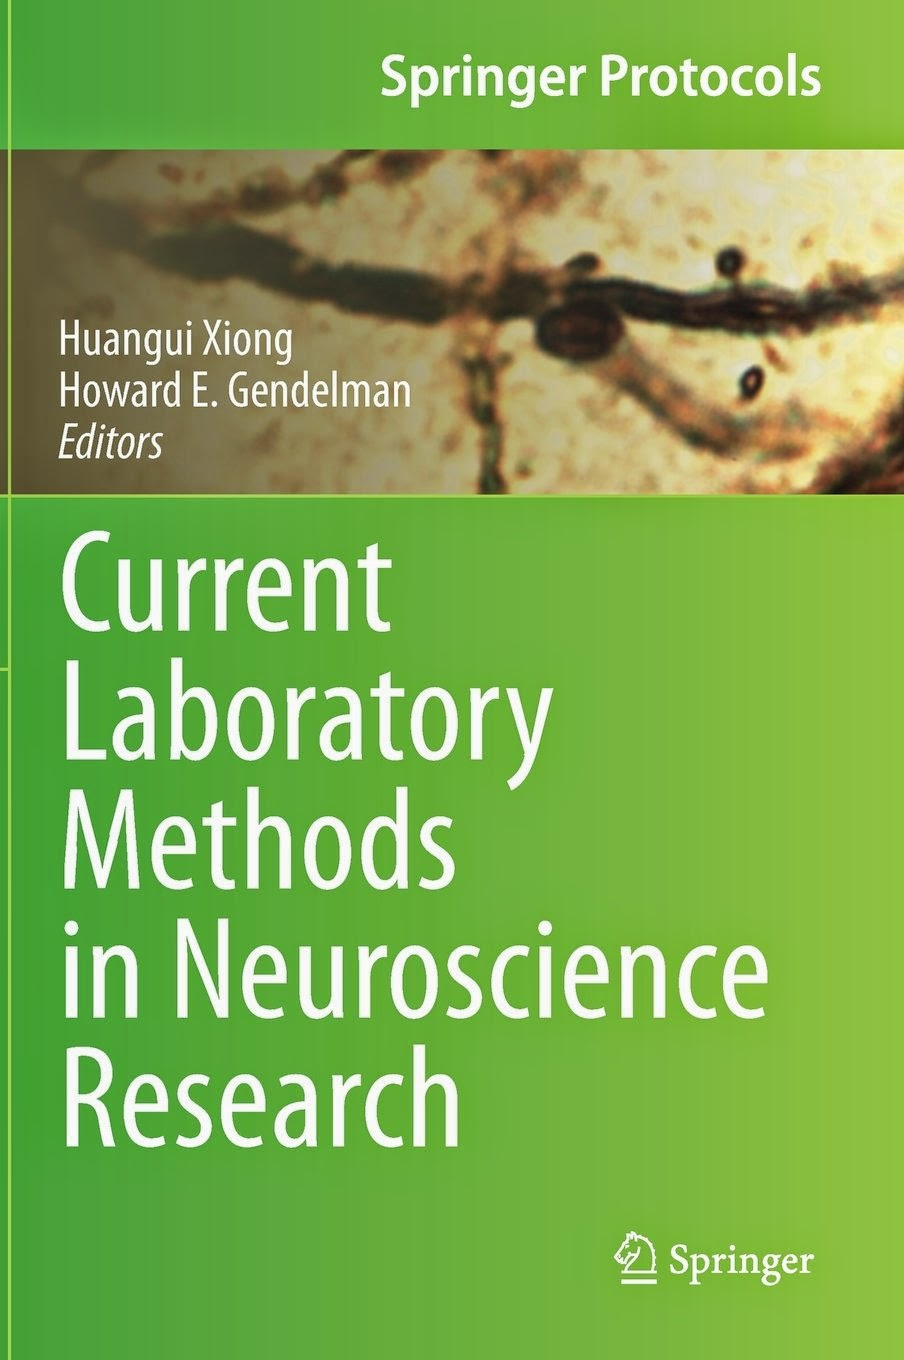 http://www.kingcheapebooks.com/2015/03/current-laboratory-methods-in.html